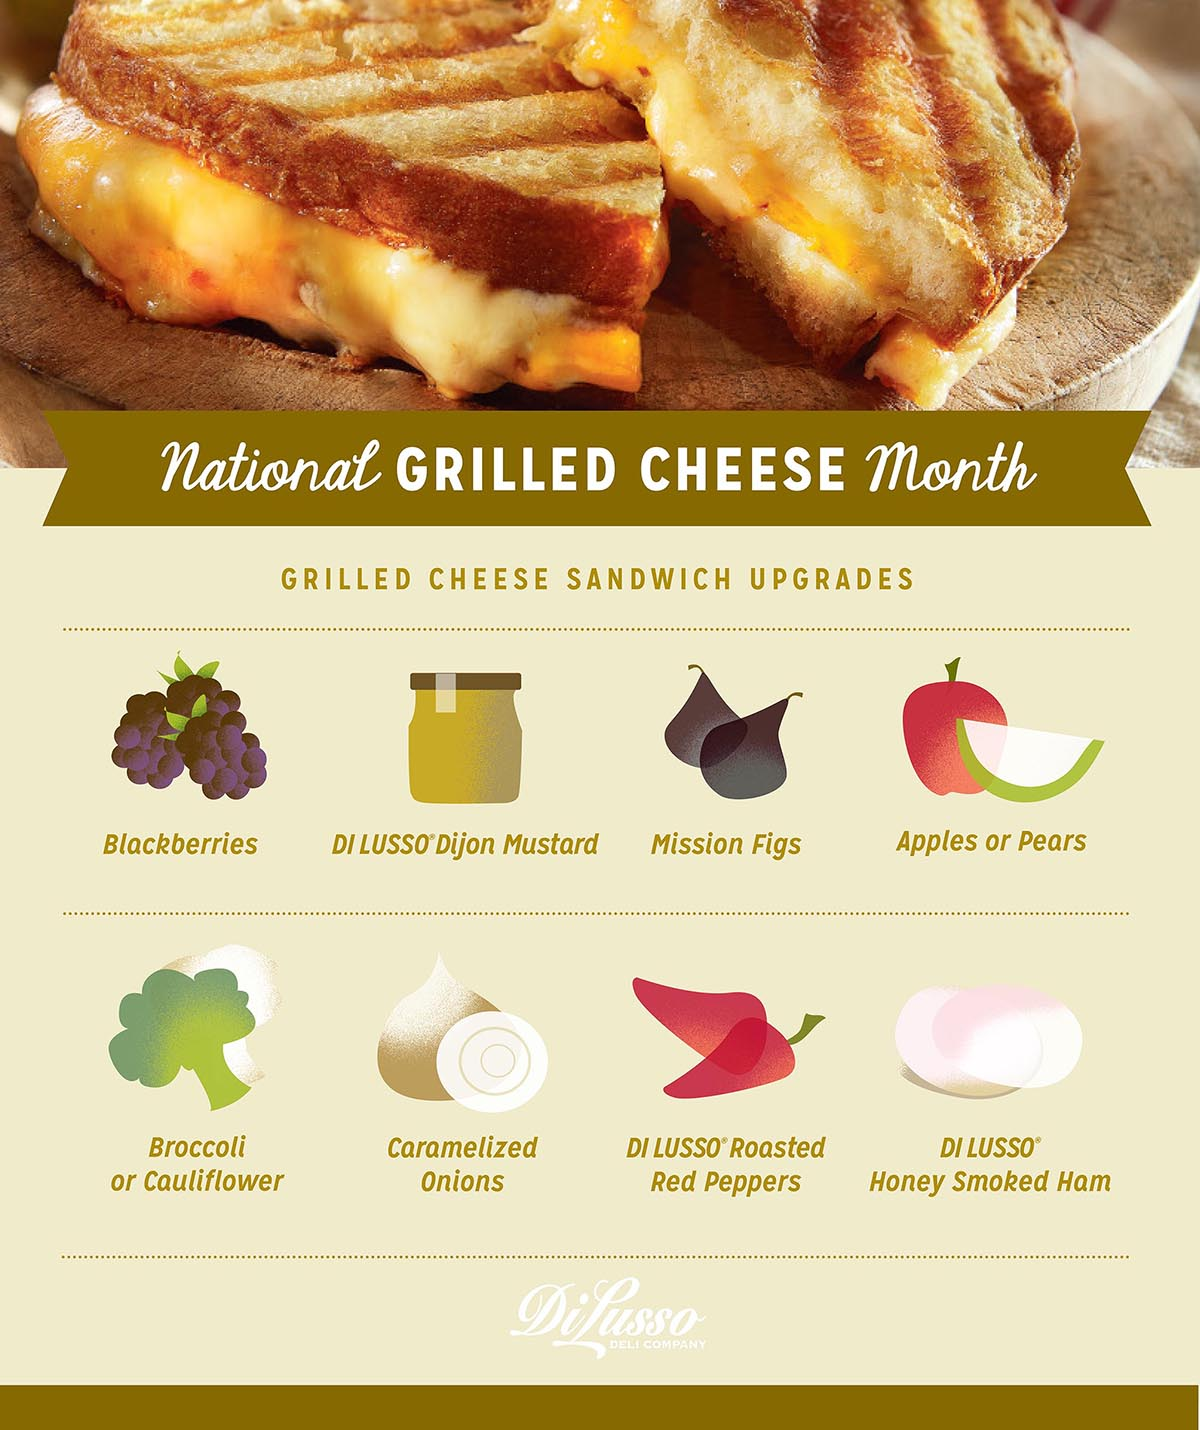 April is National Grilled Chese Month